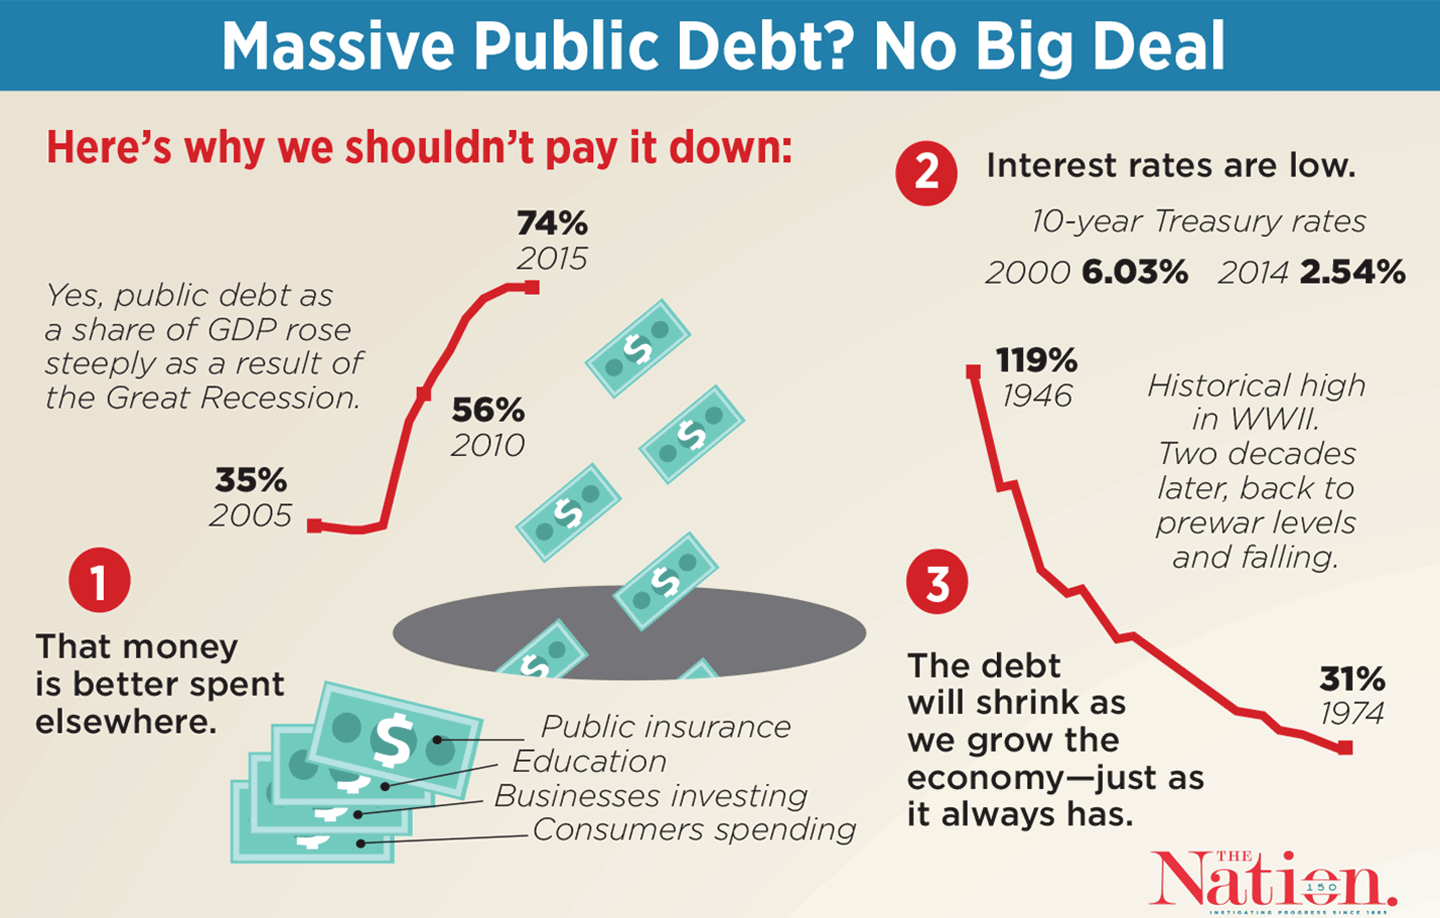 How to repay the debt